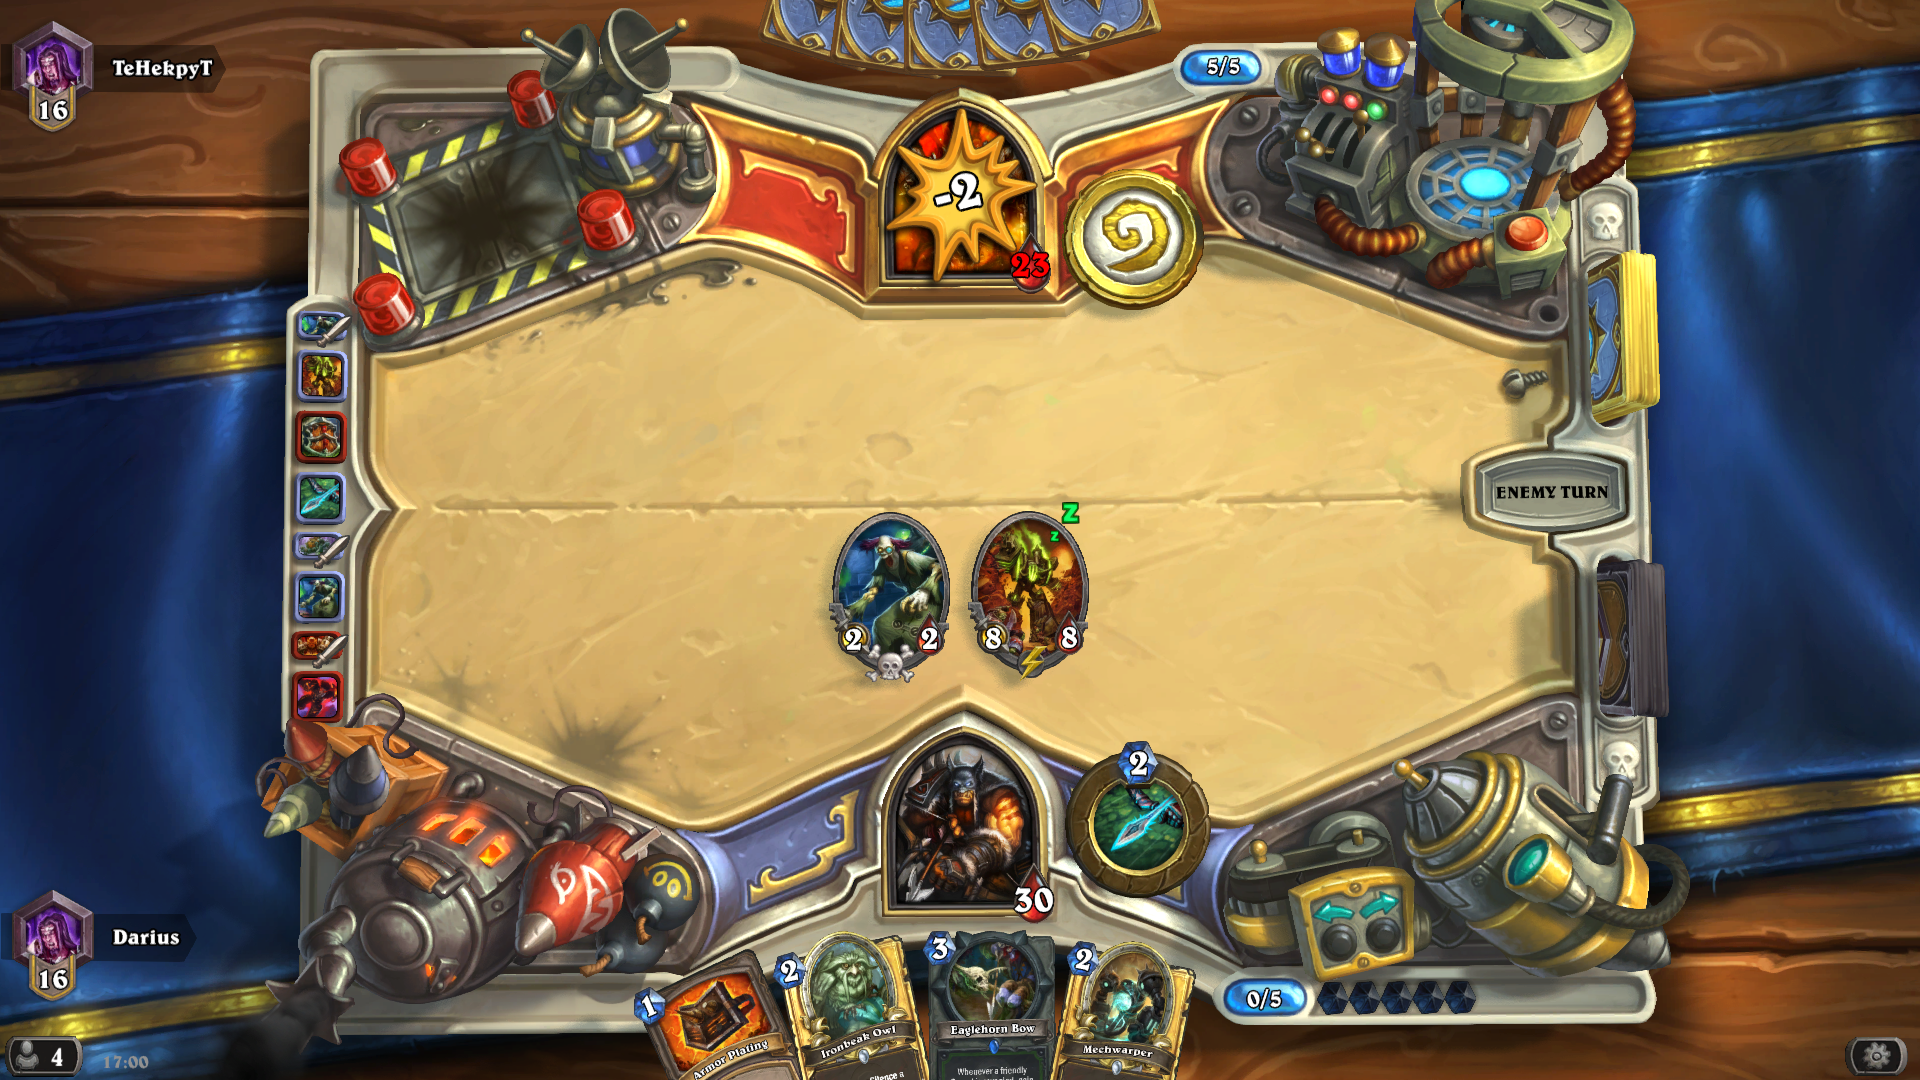 Hearthstone Screenshot 08-03-15 17.00.46.png